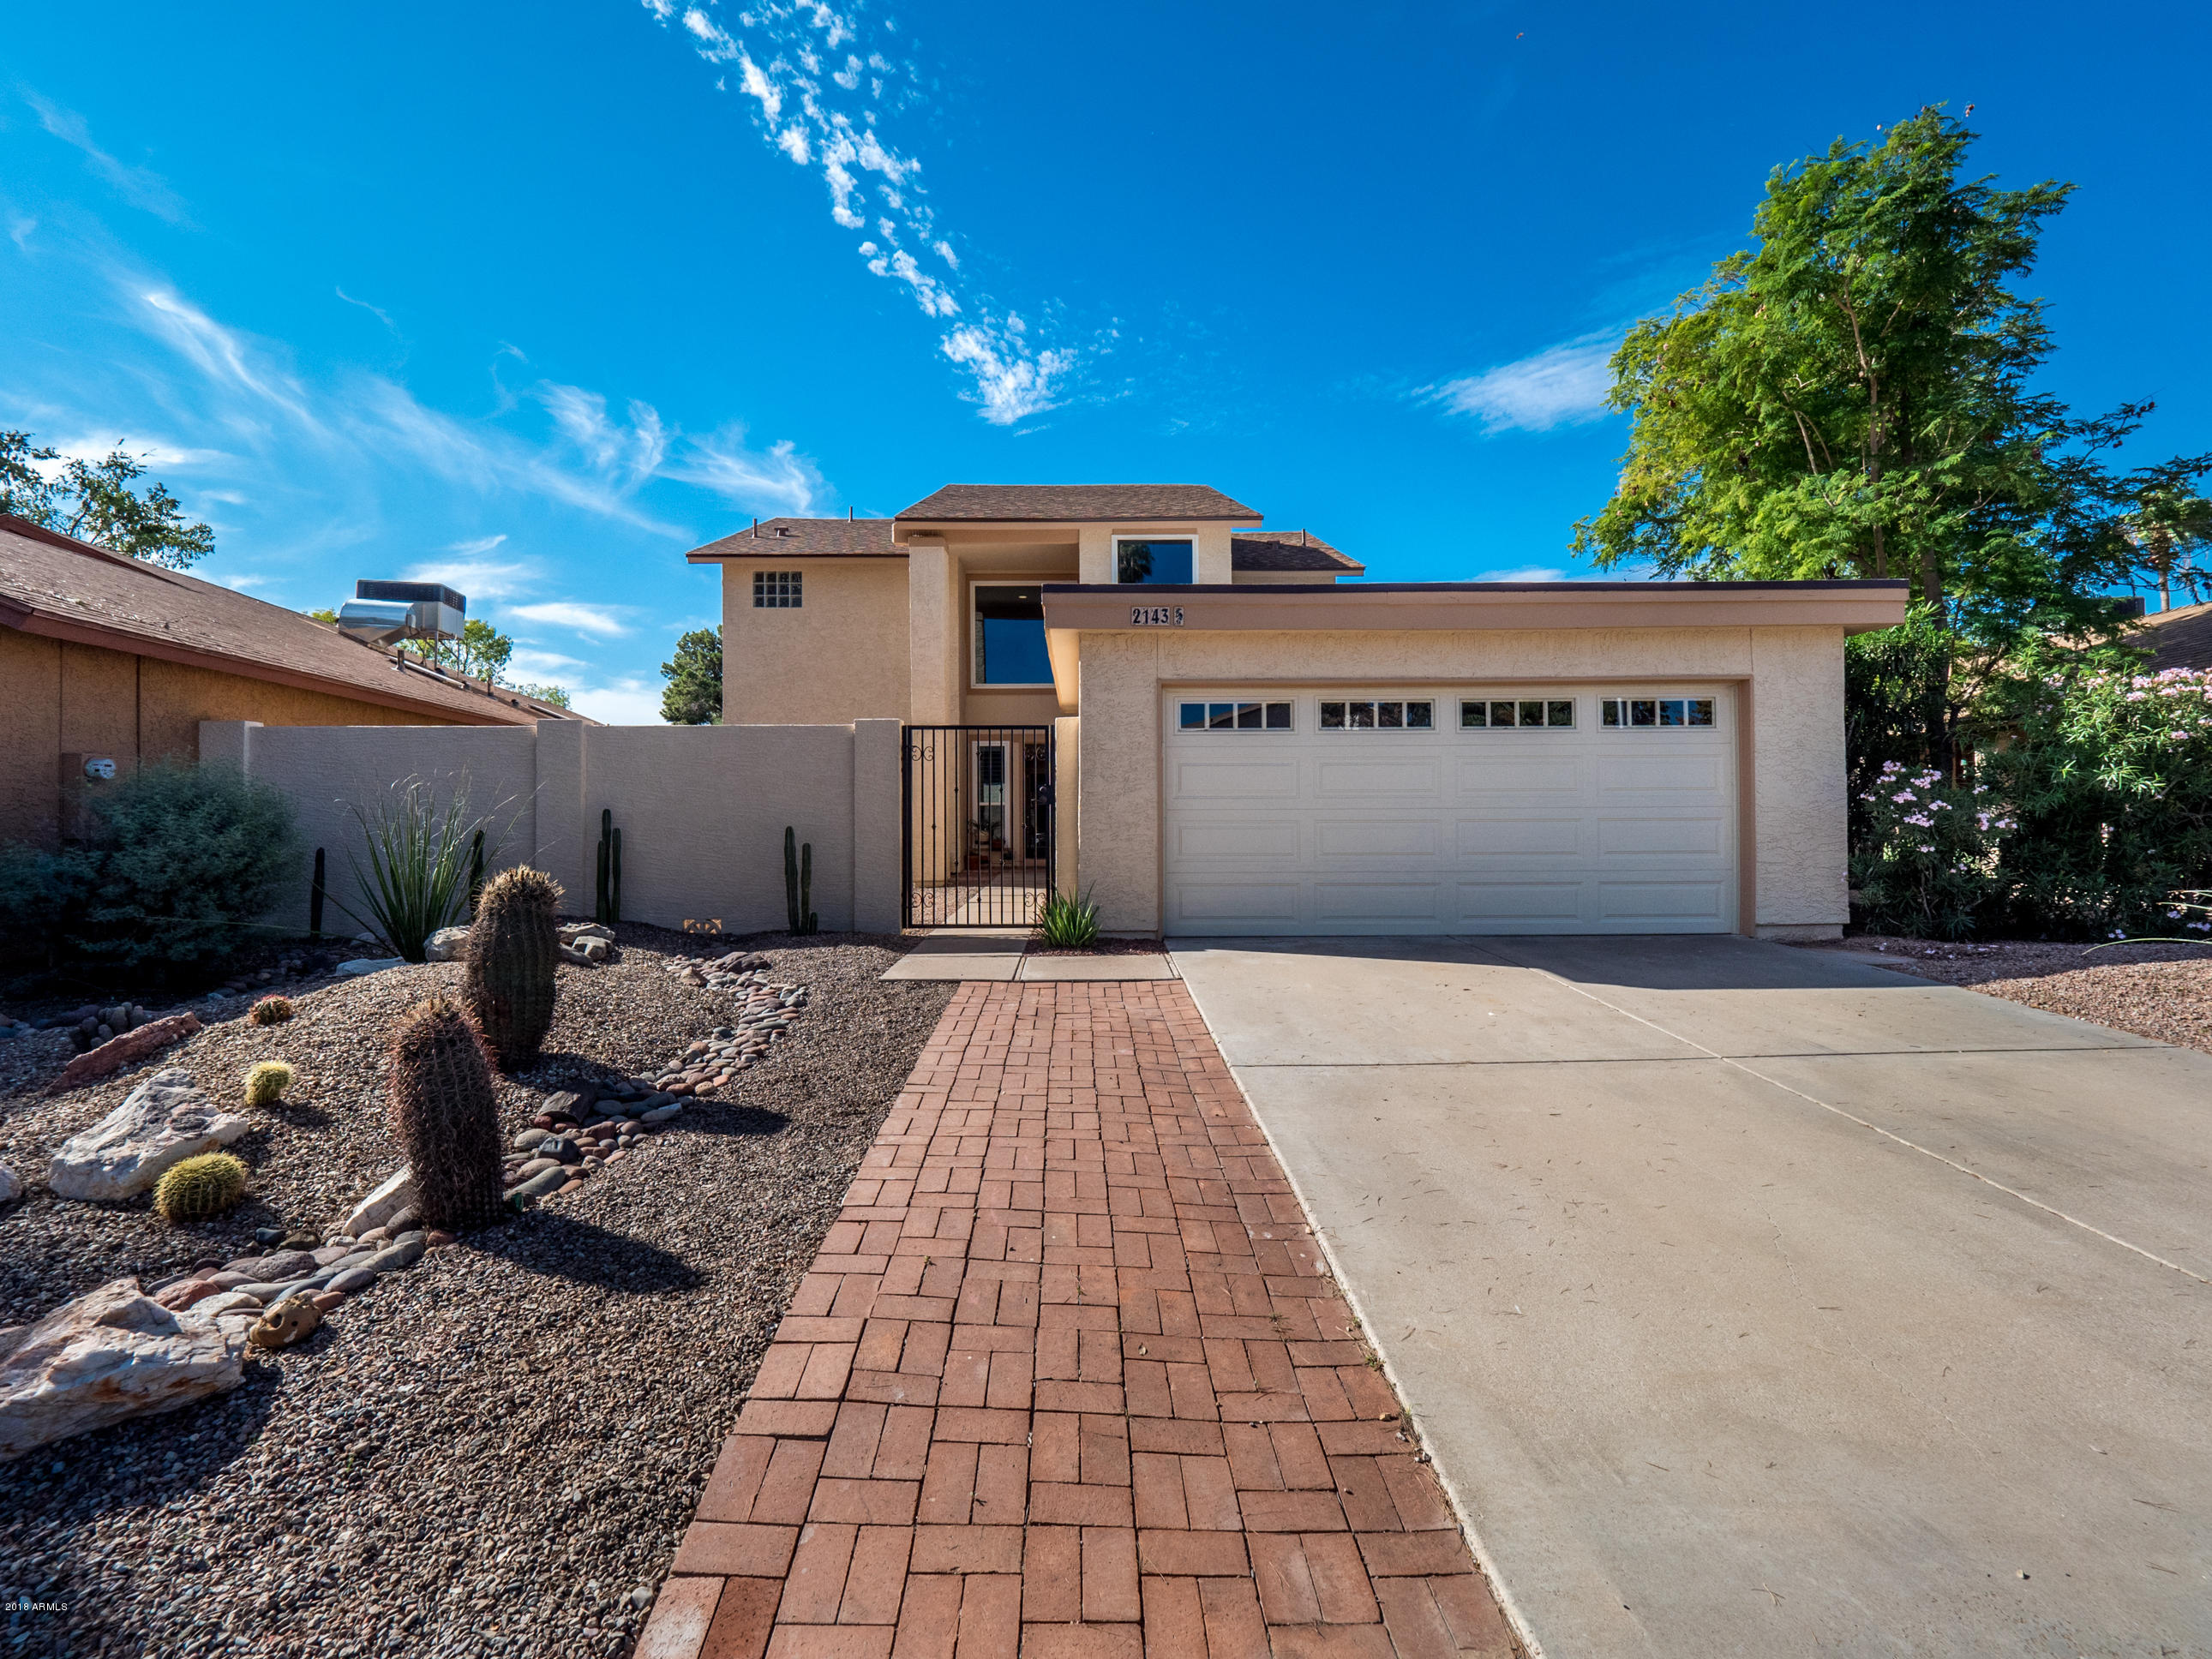 Photo of 2143 W Isthmus Loop, Mesa, AZ 85202